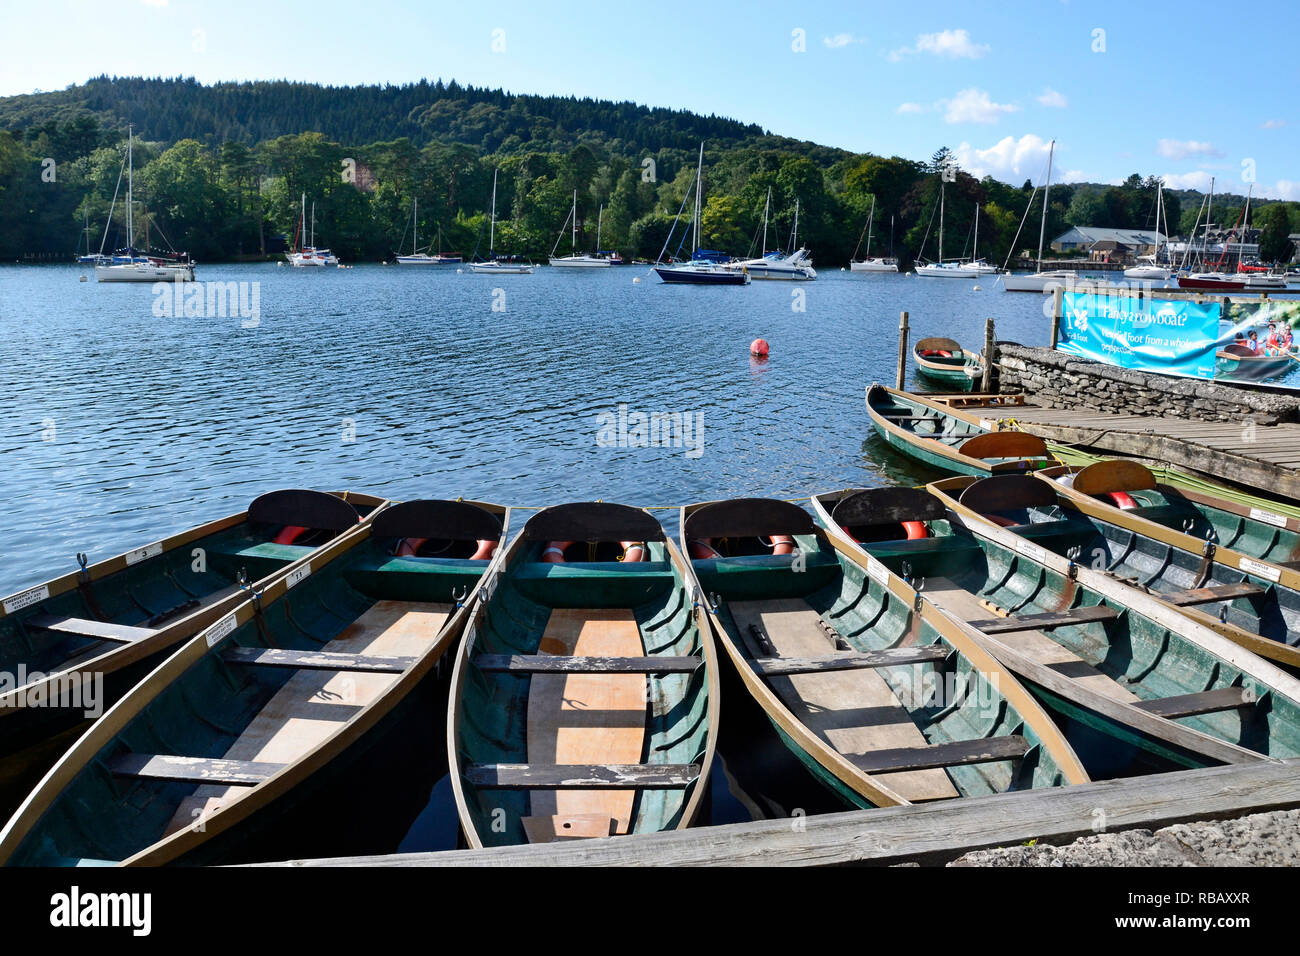 Rowing boats moored at the bank of Windermere in Fell Foot Country Park, Lake Windermere, Cumbria, UK - Stock Image